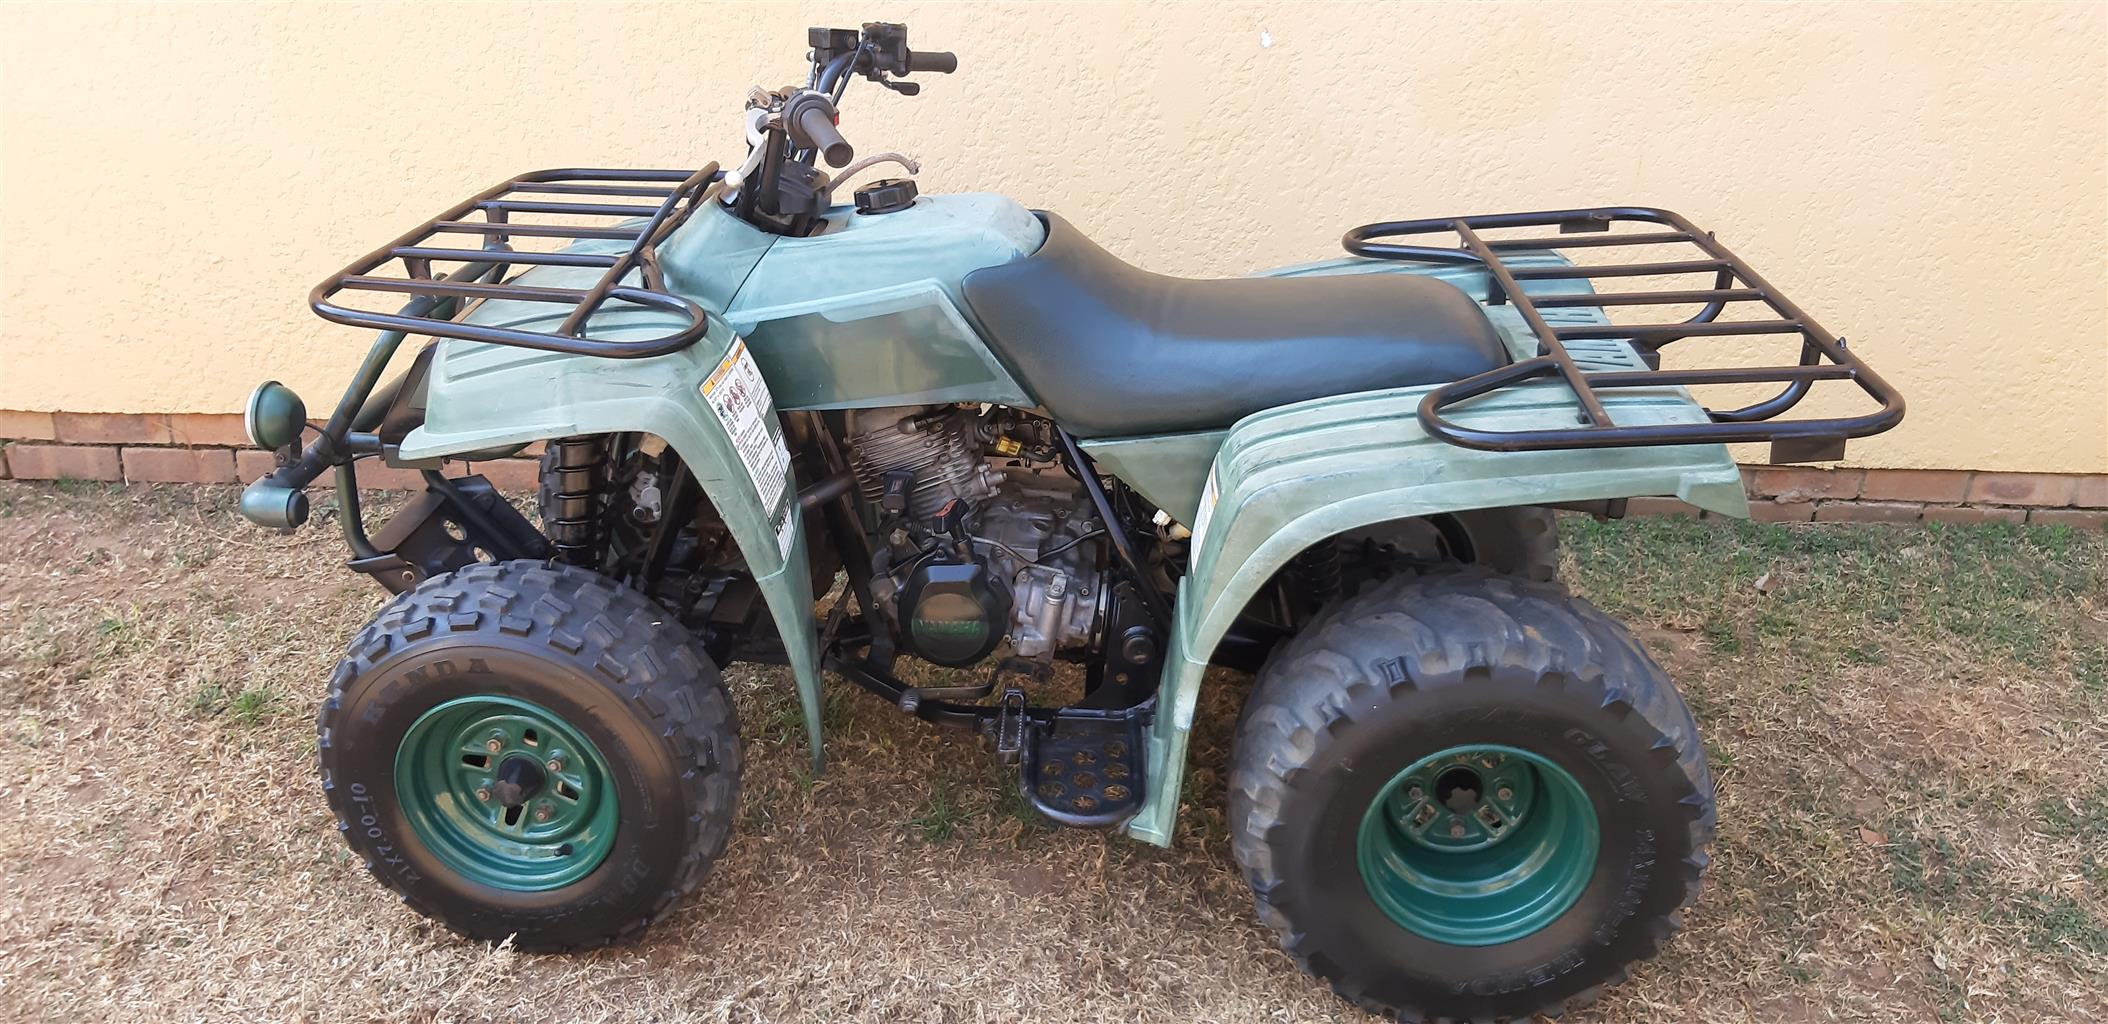 Yamaha grizzly quad bikes for sale south africa